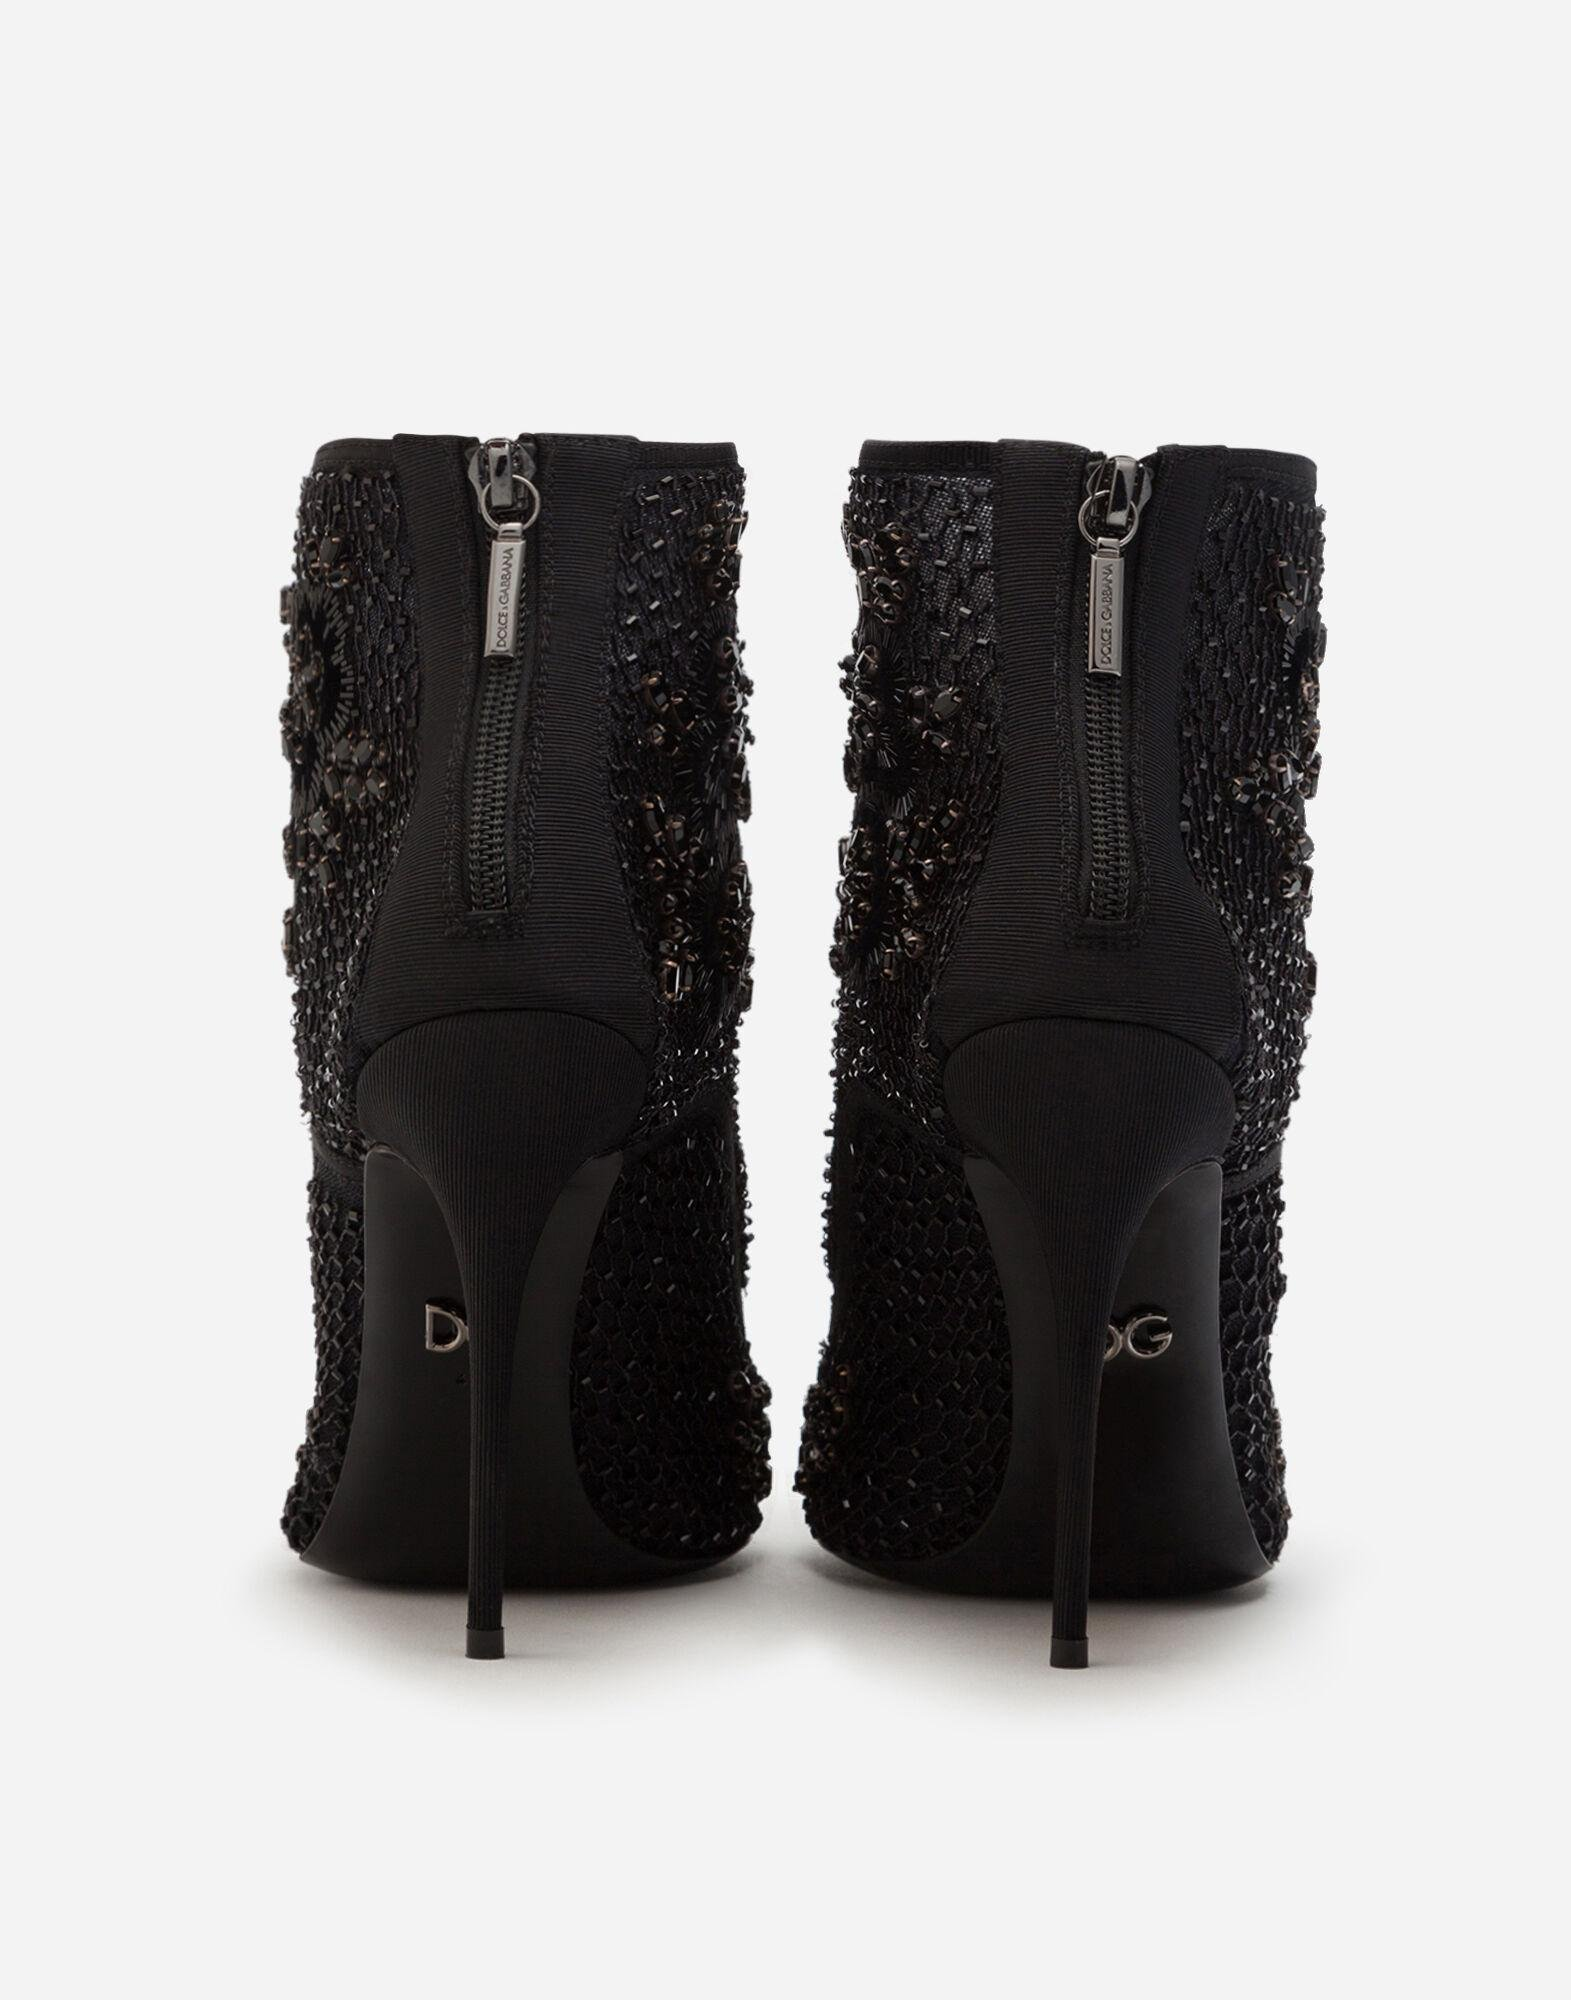 Booties with embroidery, rhinestone and bead embellishment 2